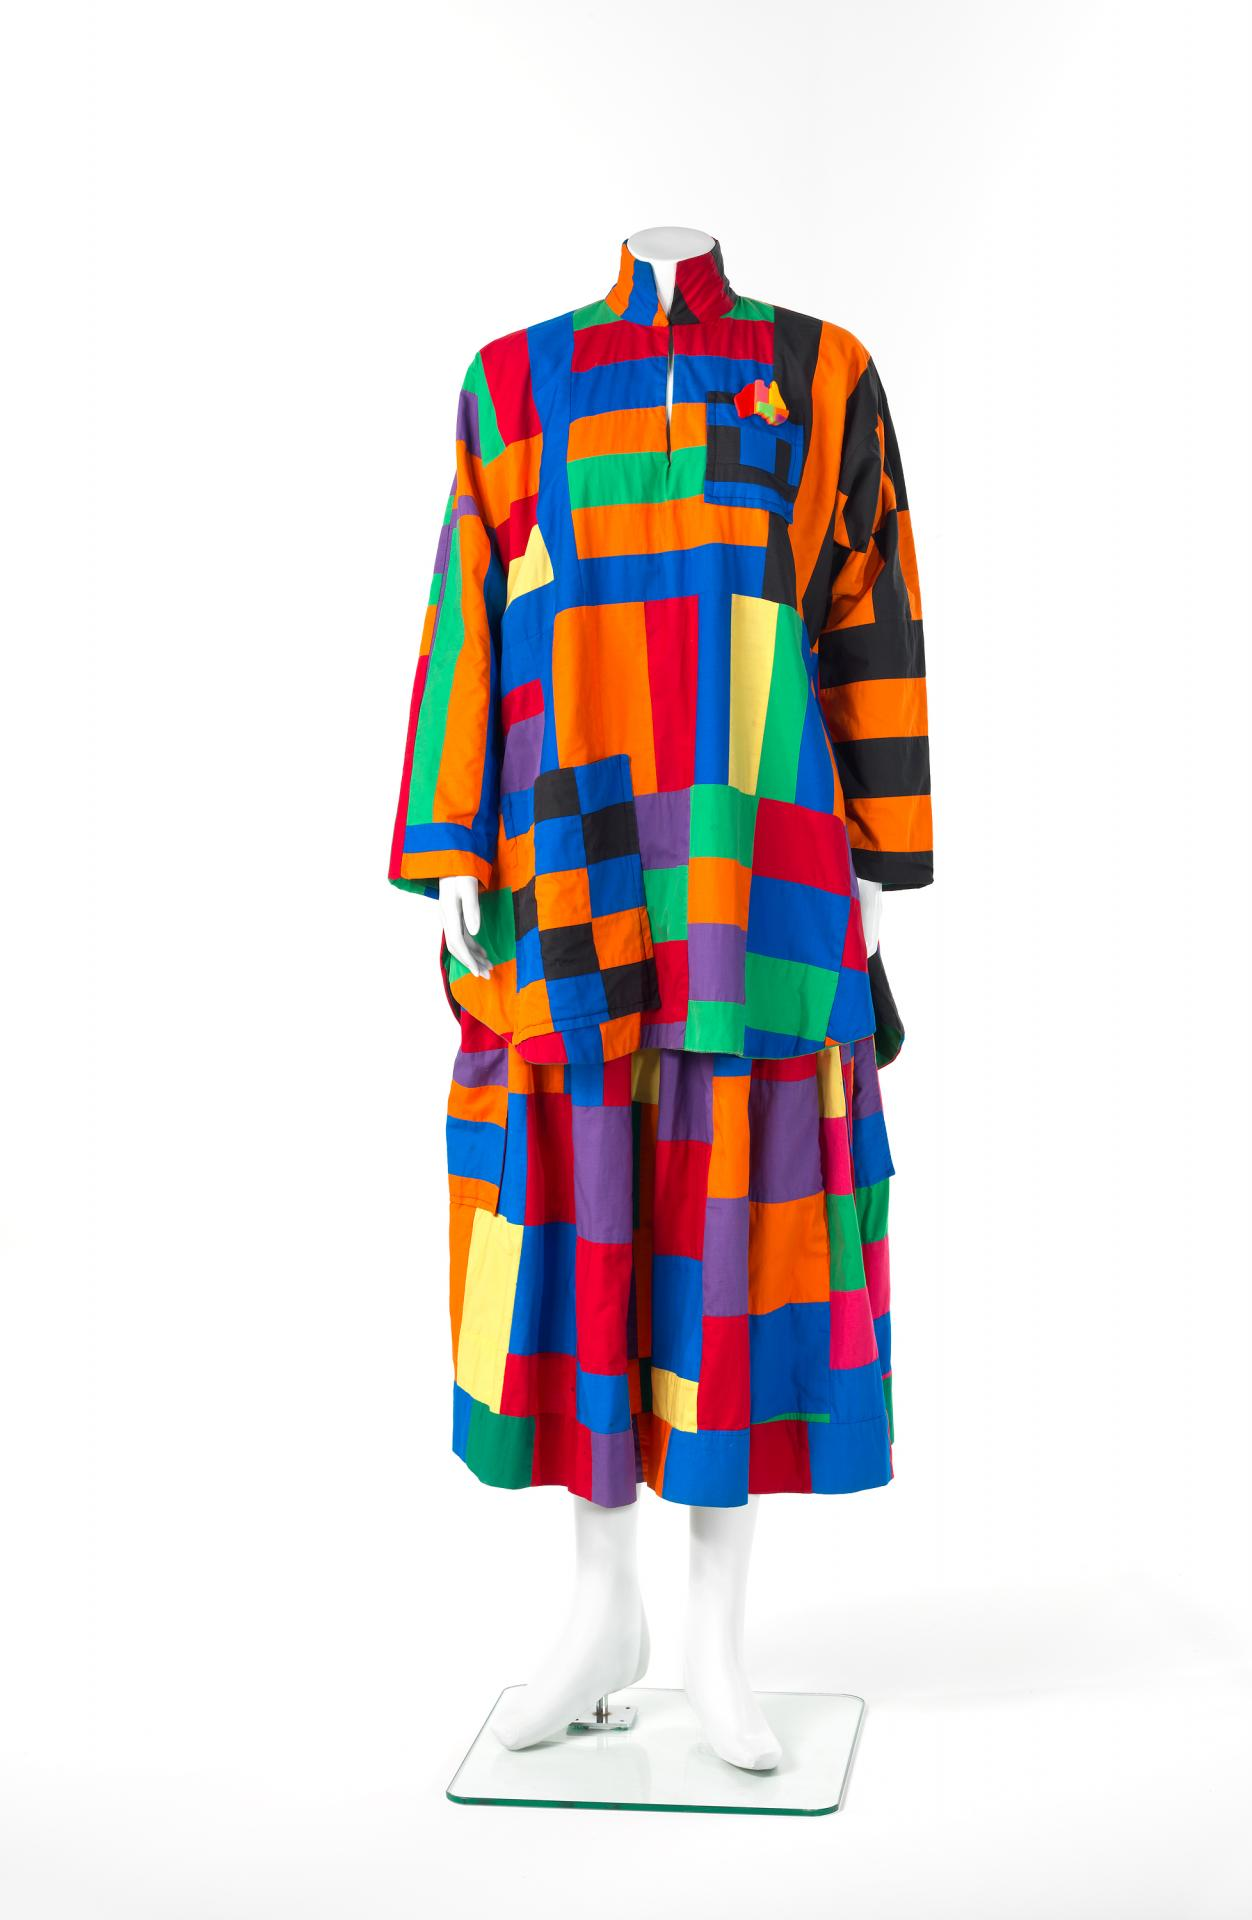 Abstract patchwork outfit